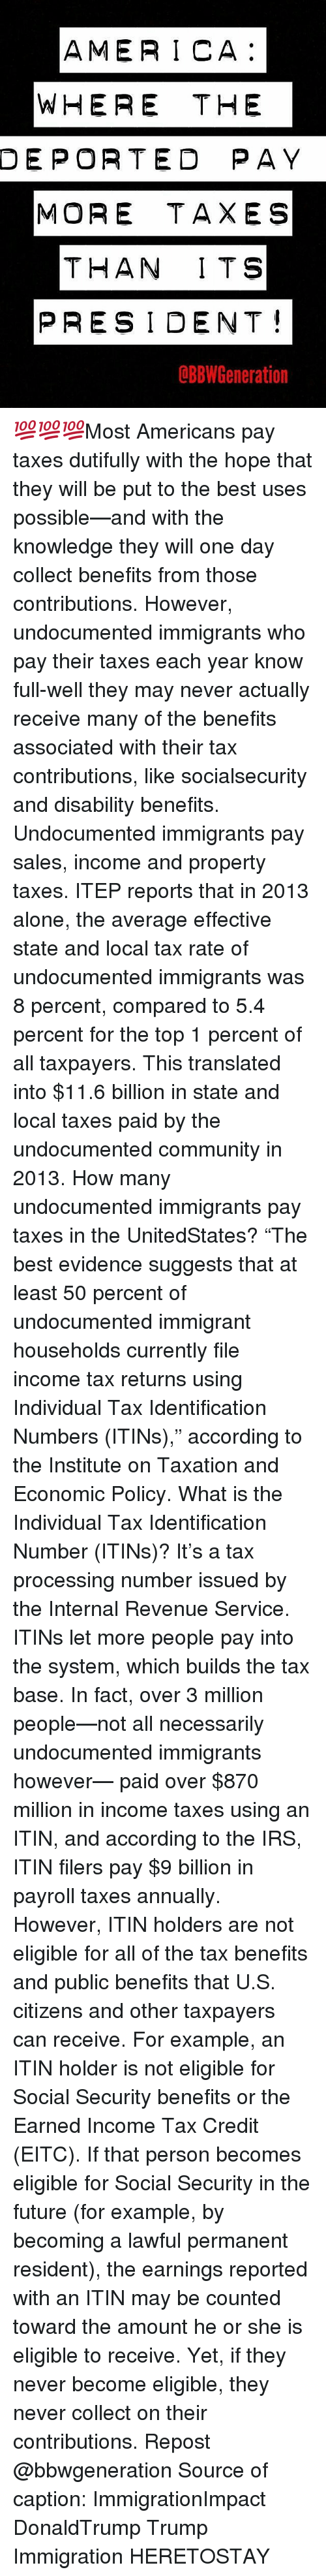 "Memes, Tax Return, and 🤖: AMERICA  WHERE THE  DEPORTED PAY  MORE TAXES  THAN ITS  PRESIDENT  dBBW Generation 💯💯💯Most Americans pay taxes dutifully with the hope that they will be put to the best uses possible—and with the knowledge they will one day collect benefits from those contributions. However, undocumented immigrants who pay their taxes each year know full-well they may never actually receive many of the benefits associated with their tax contributions, like socialsecurity and disability benefits. Undocumented immigrants pay sales, income and property taxes. ITEP reports that in 2013 alone, the average effective state and local tax rate of undocumented immigrants was 8 percent, compared to 5.4 percent for the top 1 percent of all taxpayers. This translated into $11.6 billion in state and local taxes paid by the undocumented community in 2013. How many undocumented immigrants pay taxes in the UnitedStates? ""The best evidence suggests that at least 50 percent of undocumented immigrant households currently file income tax returns using Individual Tax Identification Numbers (ITINs),"" according to the Institute on Taxation and Economic Policy. What is the Individual Tax Identification Number (ITINs)? It's a tax processing number issued by the Internal Revenue Service. ITINs let more people pay into the system, which builds the tax base. In fact, over 3 million people—not all necessarily undocumented immigrants however— paid over $870 million in income taxes using an ITIN, and according to the IRS, ITIN filers pay $9 billion in payroll taxes annually. However, ITIN holders are not eligible for all of the tax benefits and public benefits that U.S. citizens and other taxpayers can receive. For example, an ITIN holder is not eligible for Social Security benefits or the Earned Income Tax Credit (EITC). If that person becomes eligible for Social Security in the future (for example, by becoming a lawful permanent resident), the earnings reported with an ITIN may be counted toward the amount he or she is eligible to receive. Yet, if they never become eligible, they never collect on their contributions. Repost @bbwgeneration Source of caption: ImmigrationImpact DonaldTrump Trump Immigration HERETOSTAY"